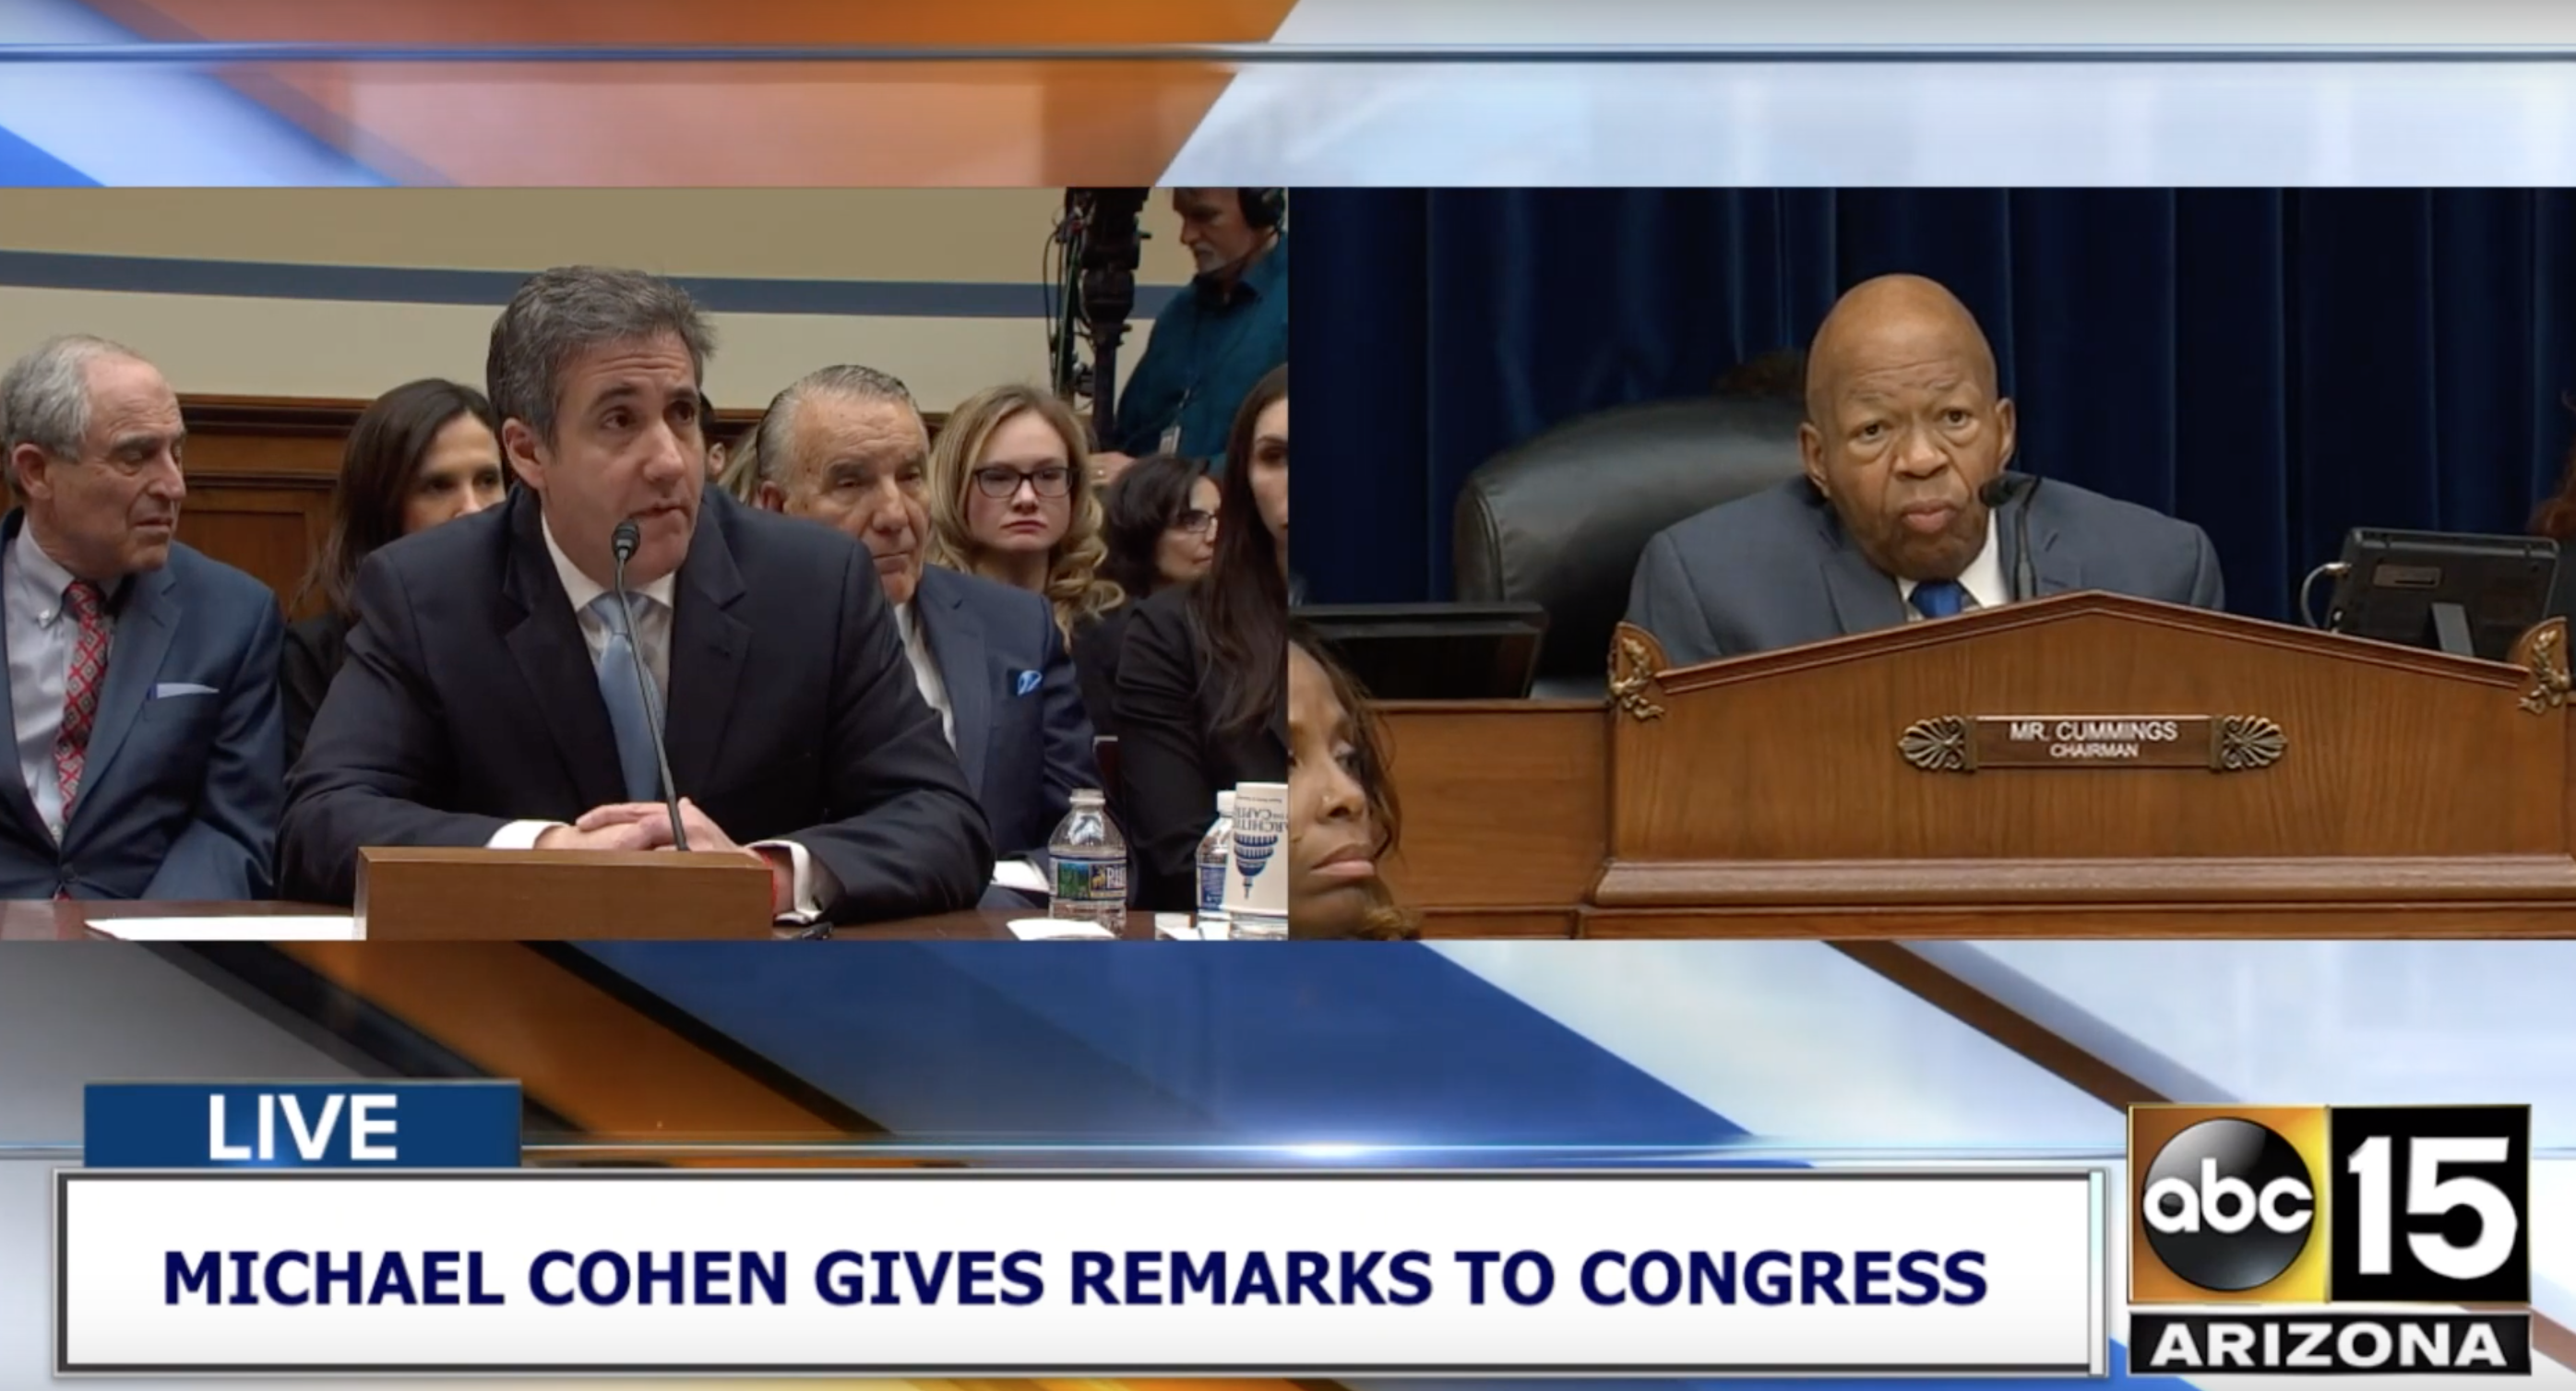 Televised footage of Michael Cohen responding to questions about BTA Bank during a US congressional hearing on February 27.